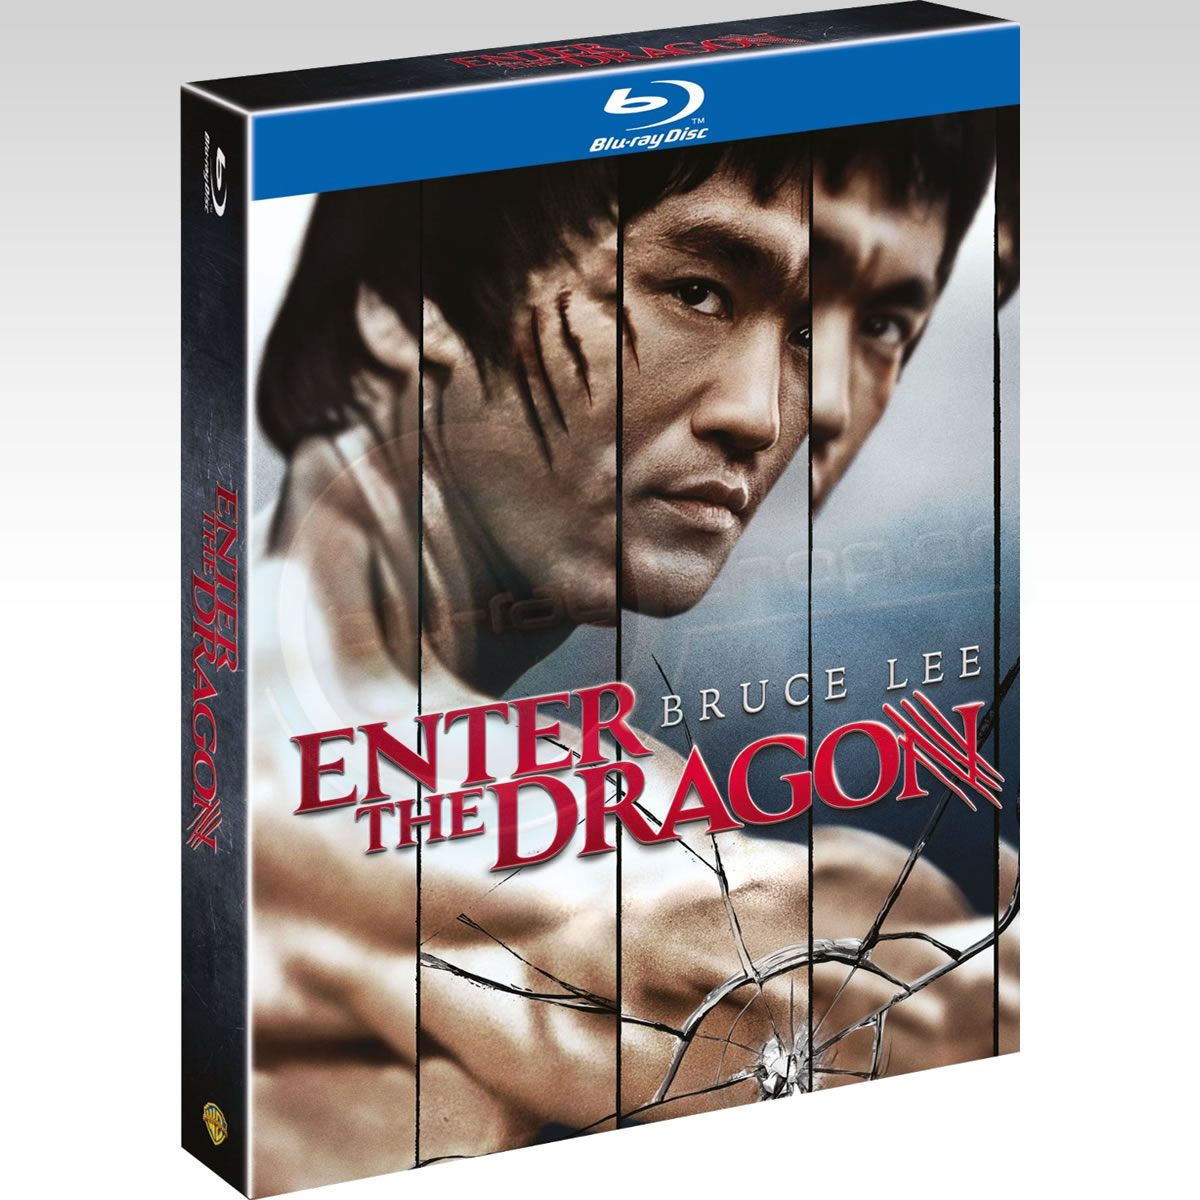 ENTER THE DRAGON 40th Anniversary Edition REMASTERED - � �������� ������� ��� ����� ����� 40th ��������� ������ REMASTERED [��������� �� ���������� ����������] (BLU-RAY)